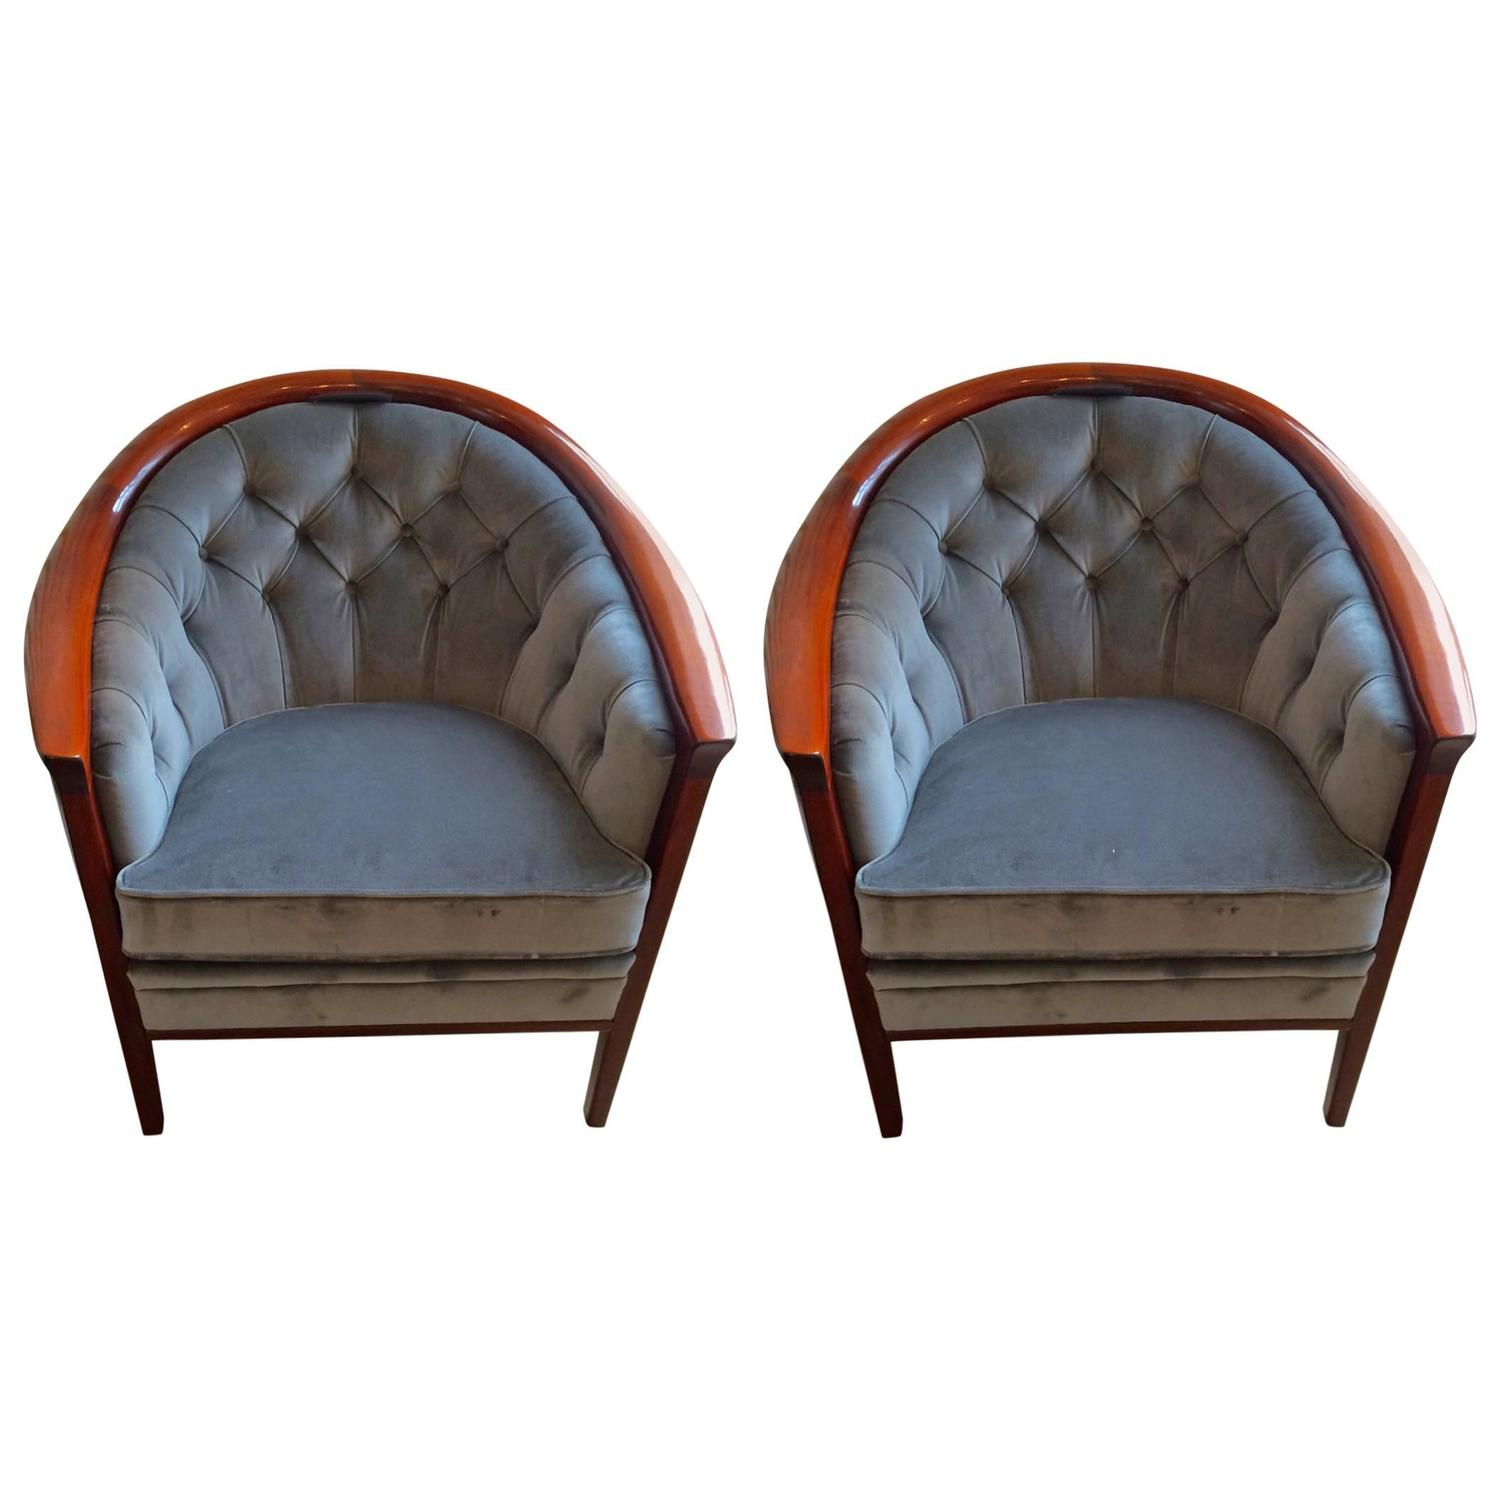 Pair of swedish modern wood tub chairs by bertil fridhagen